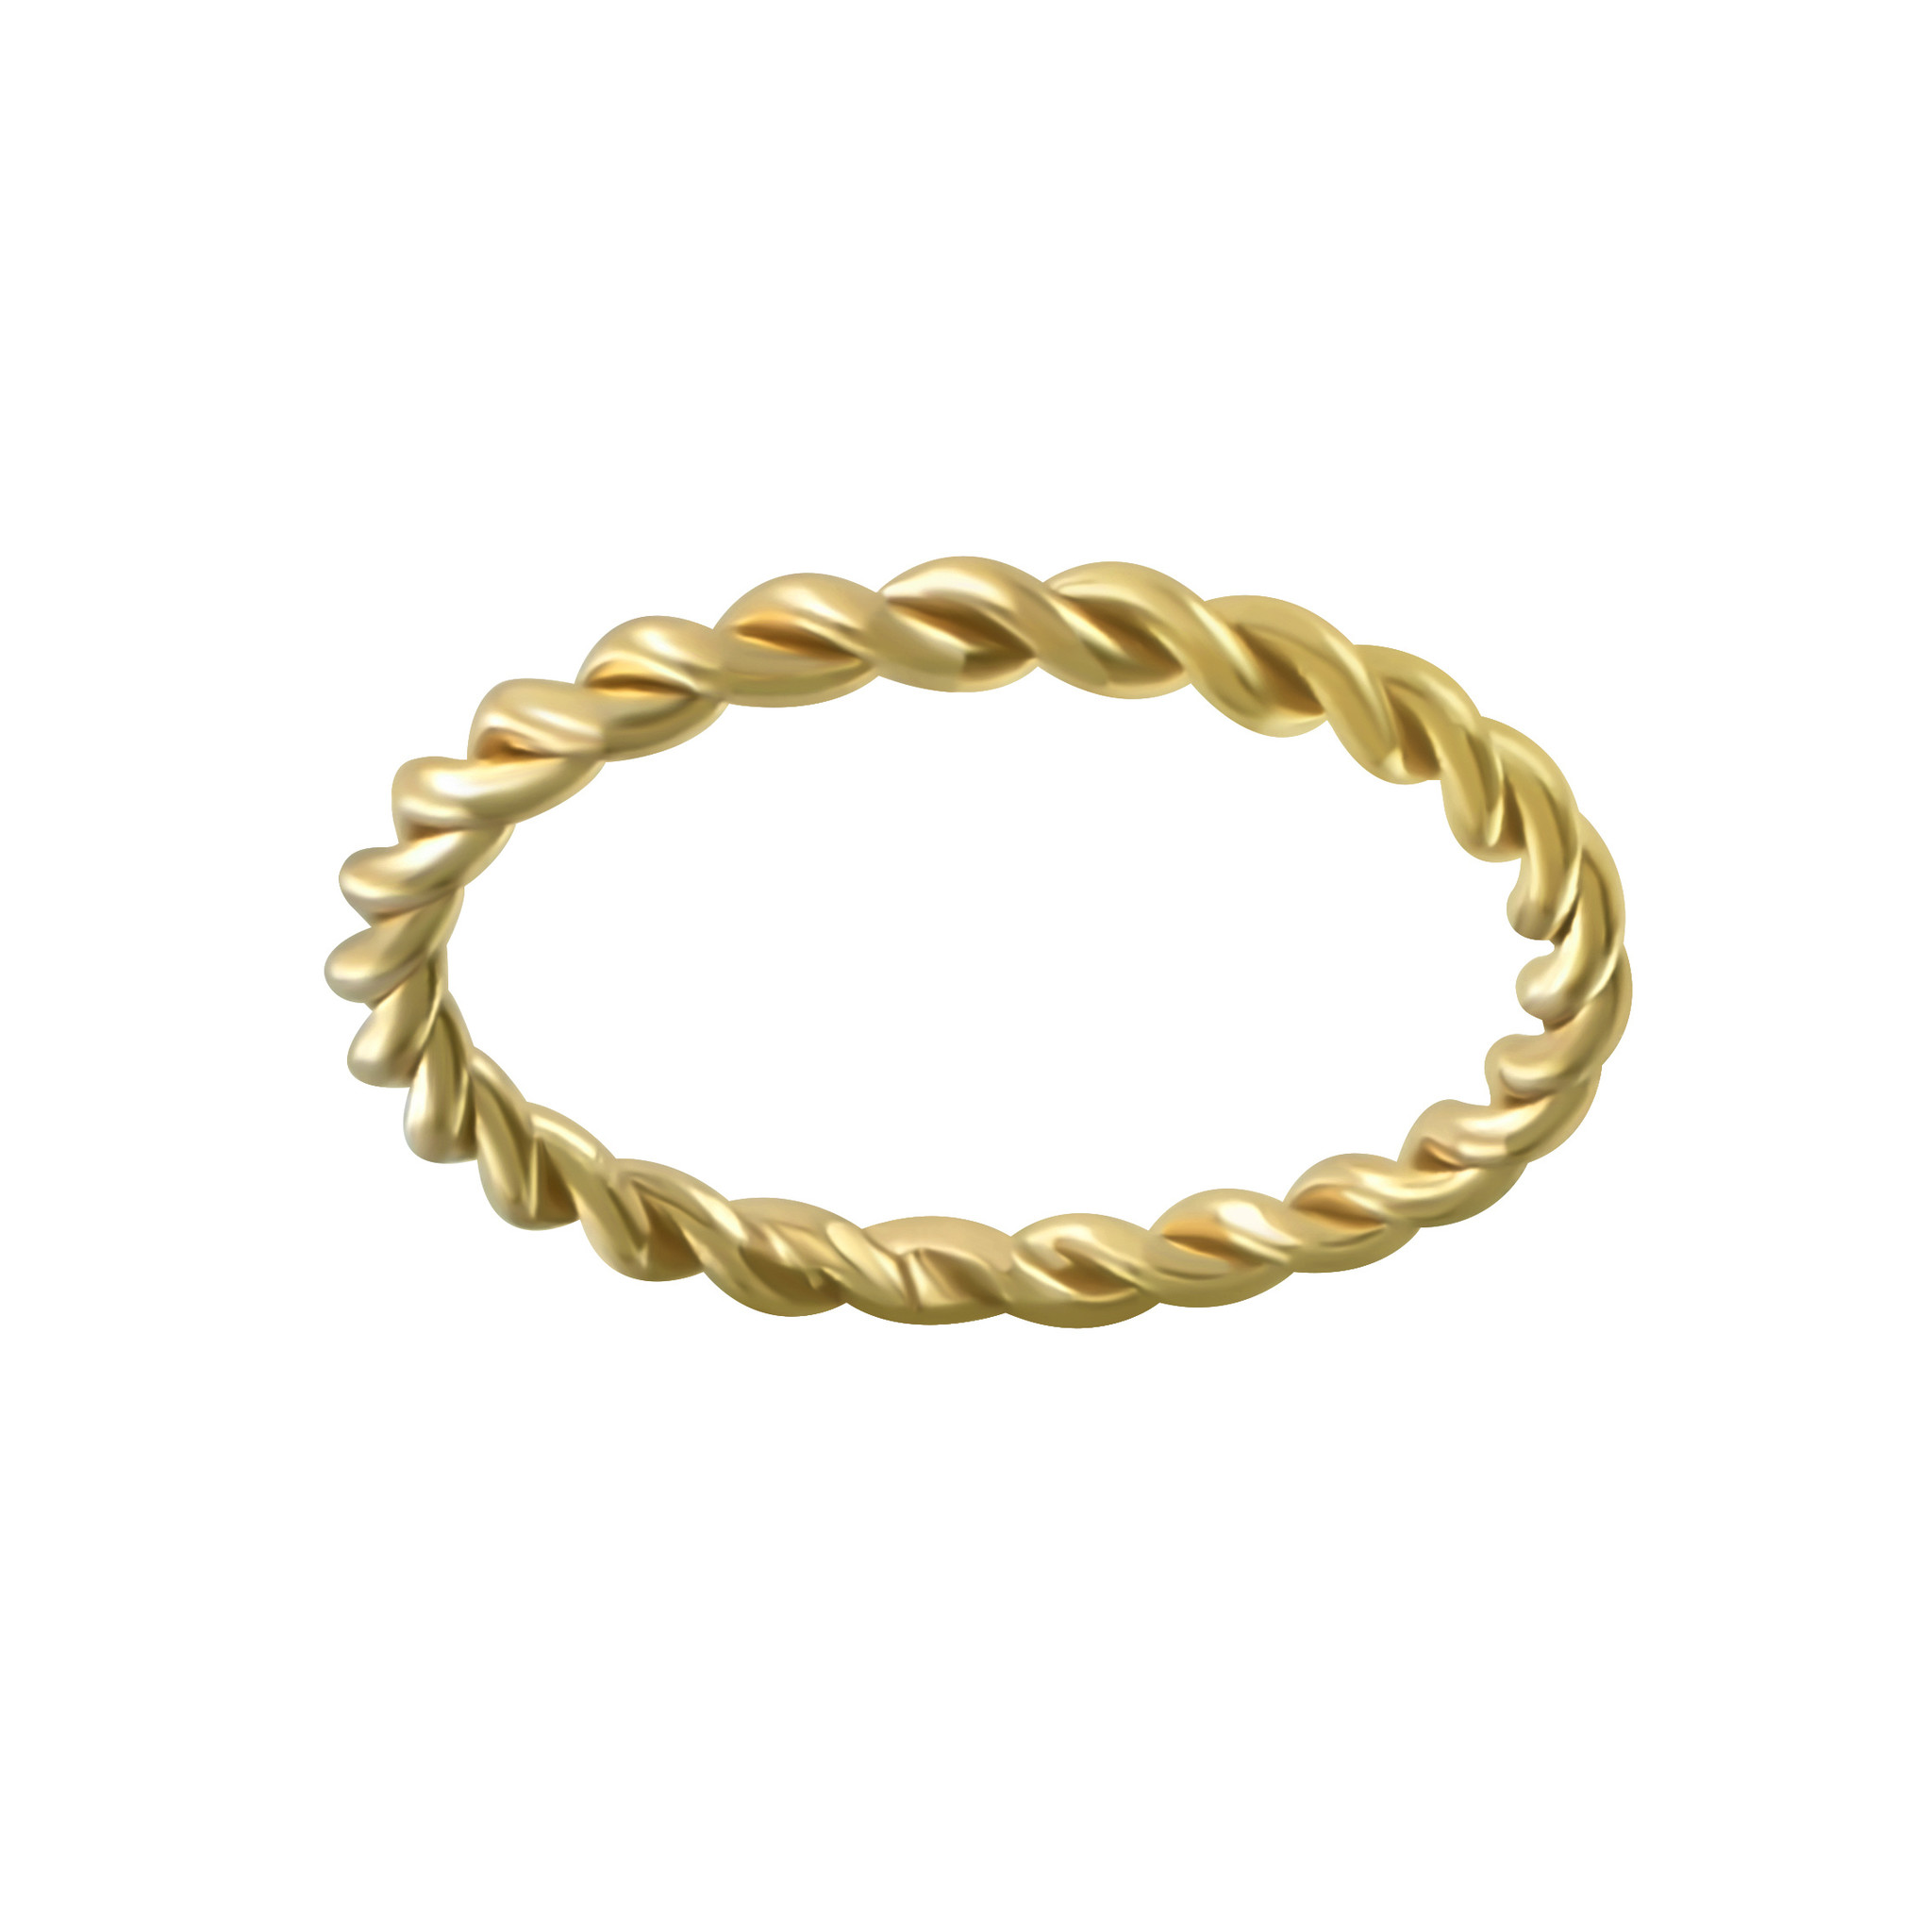 Massive braided ring of 925 sterling silver - Gold-1